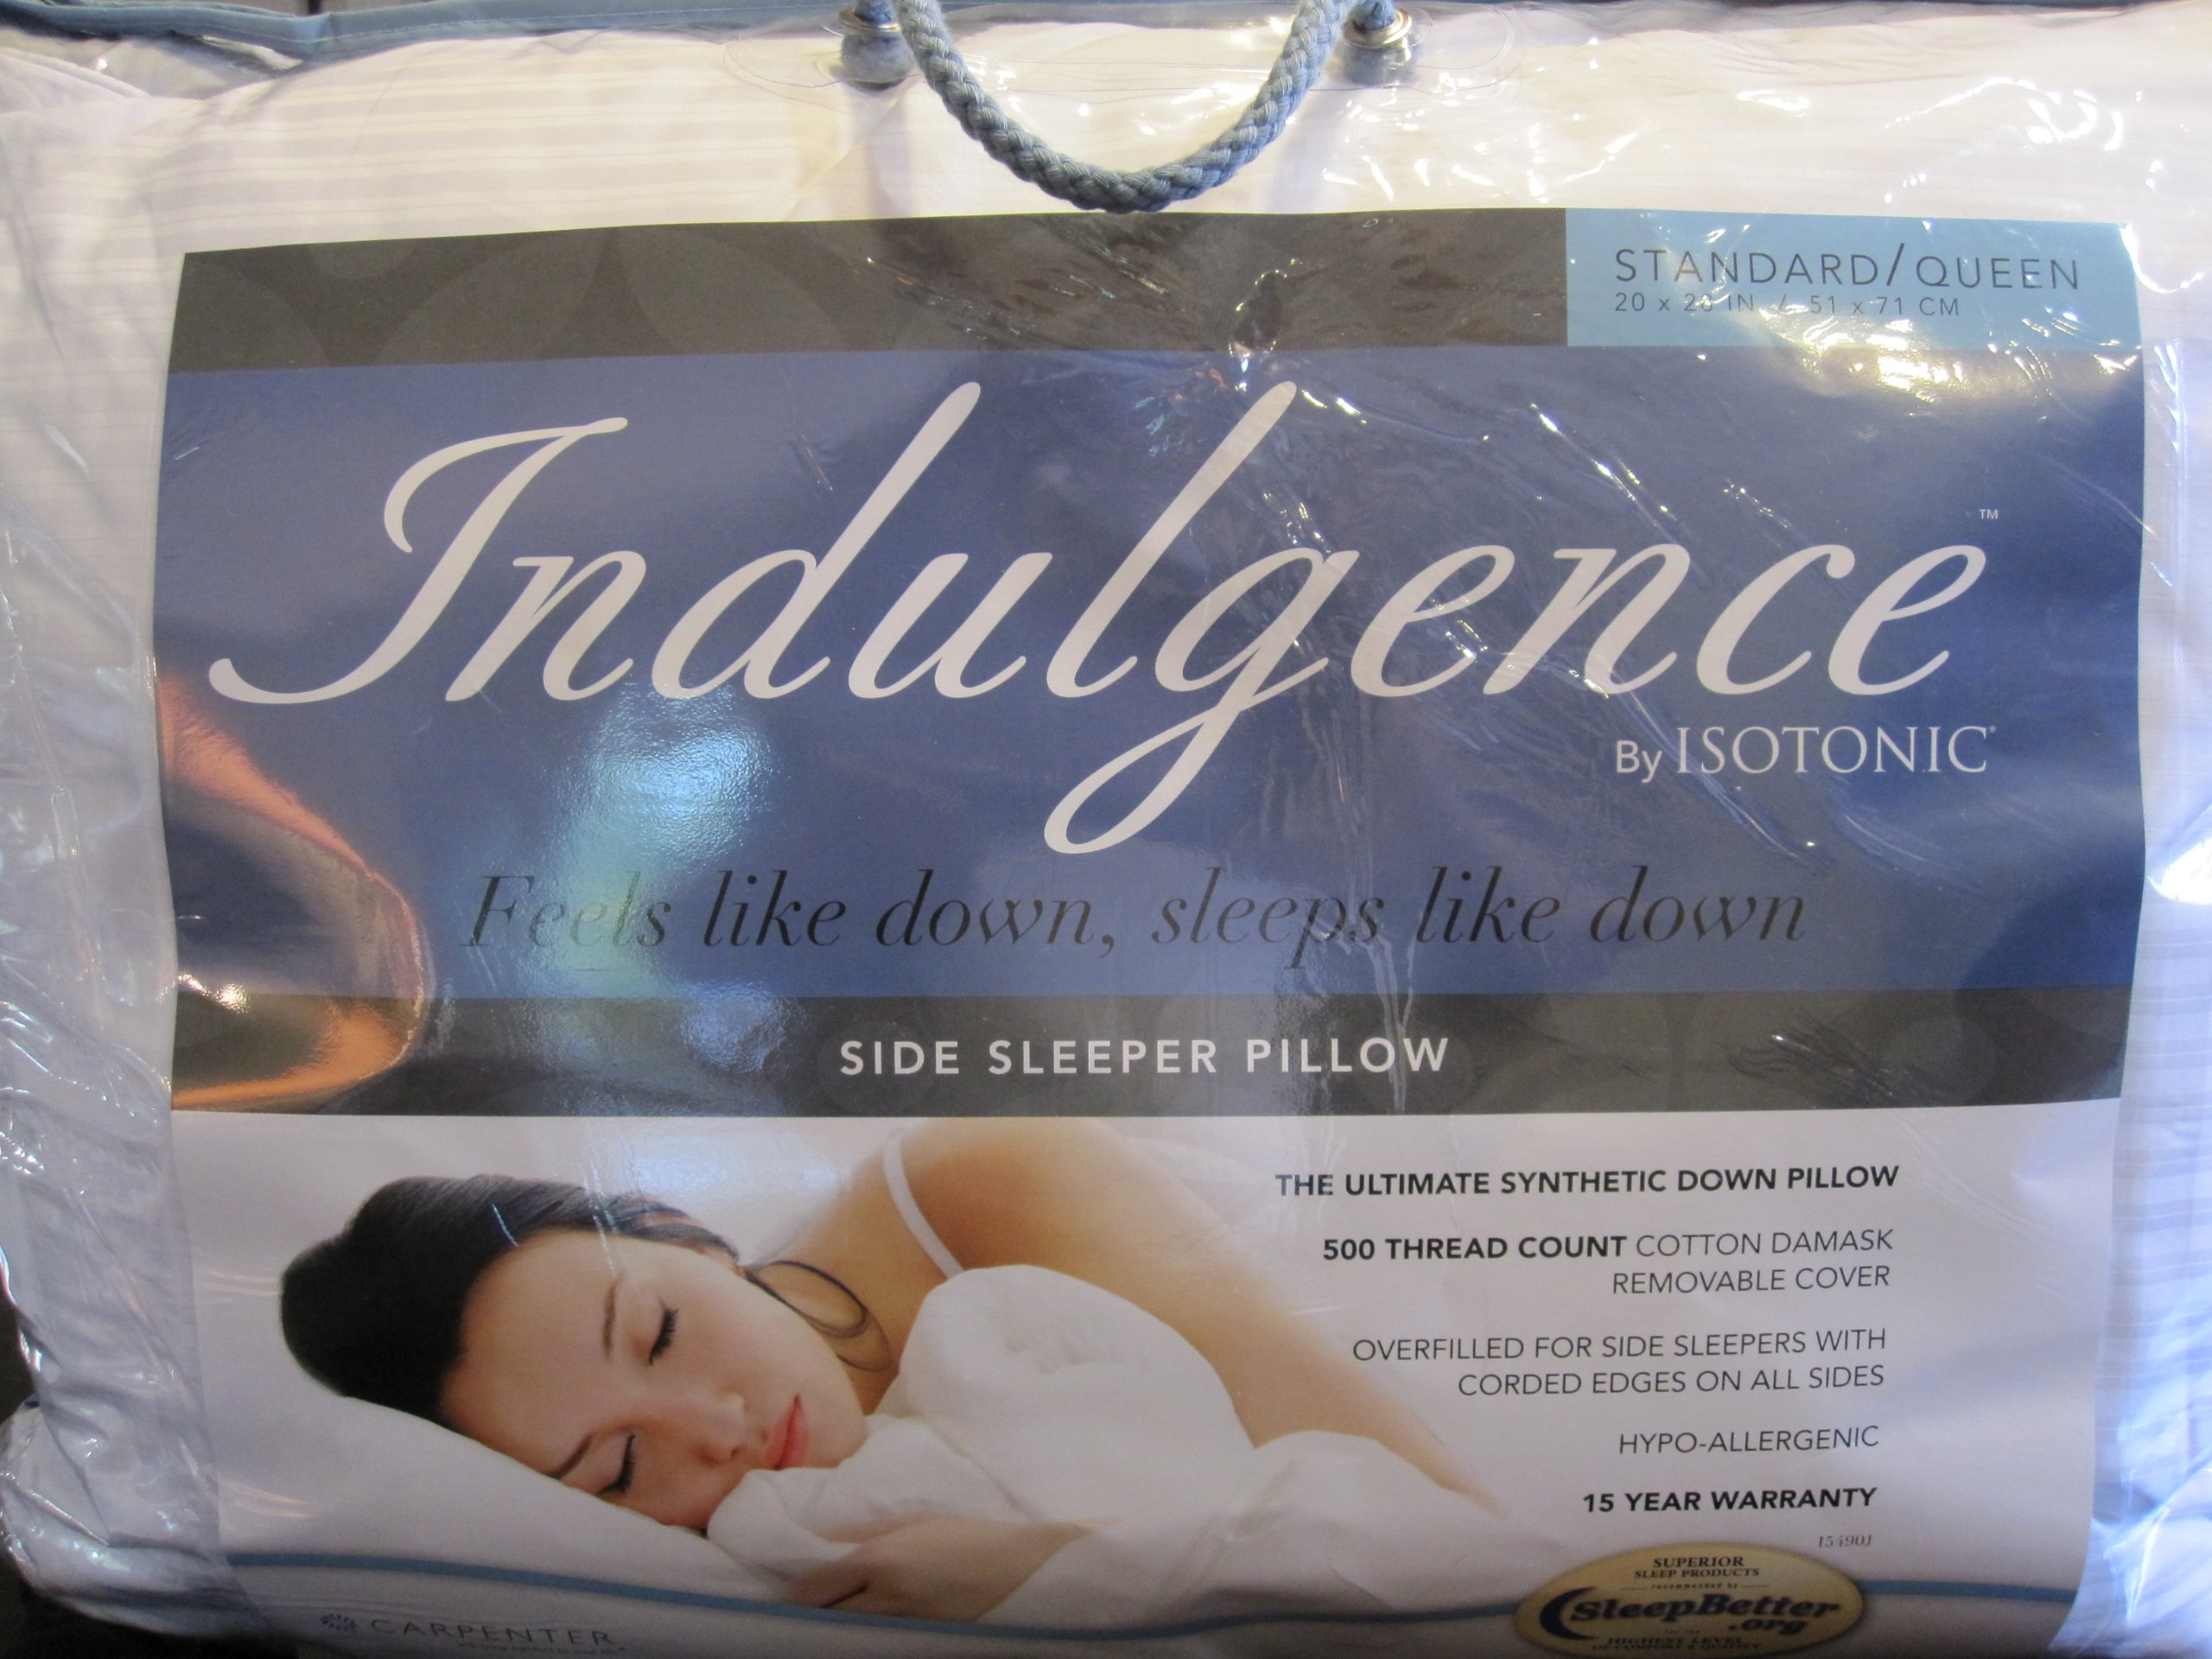 Indulgence Standard/Queen Side Sleeper Pillow by Isotonic 28''x20''